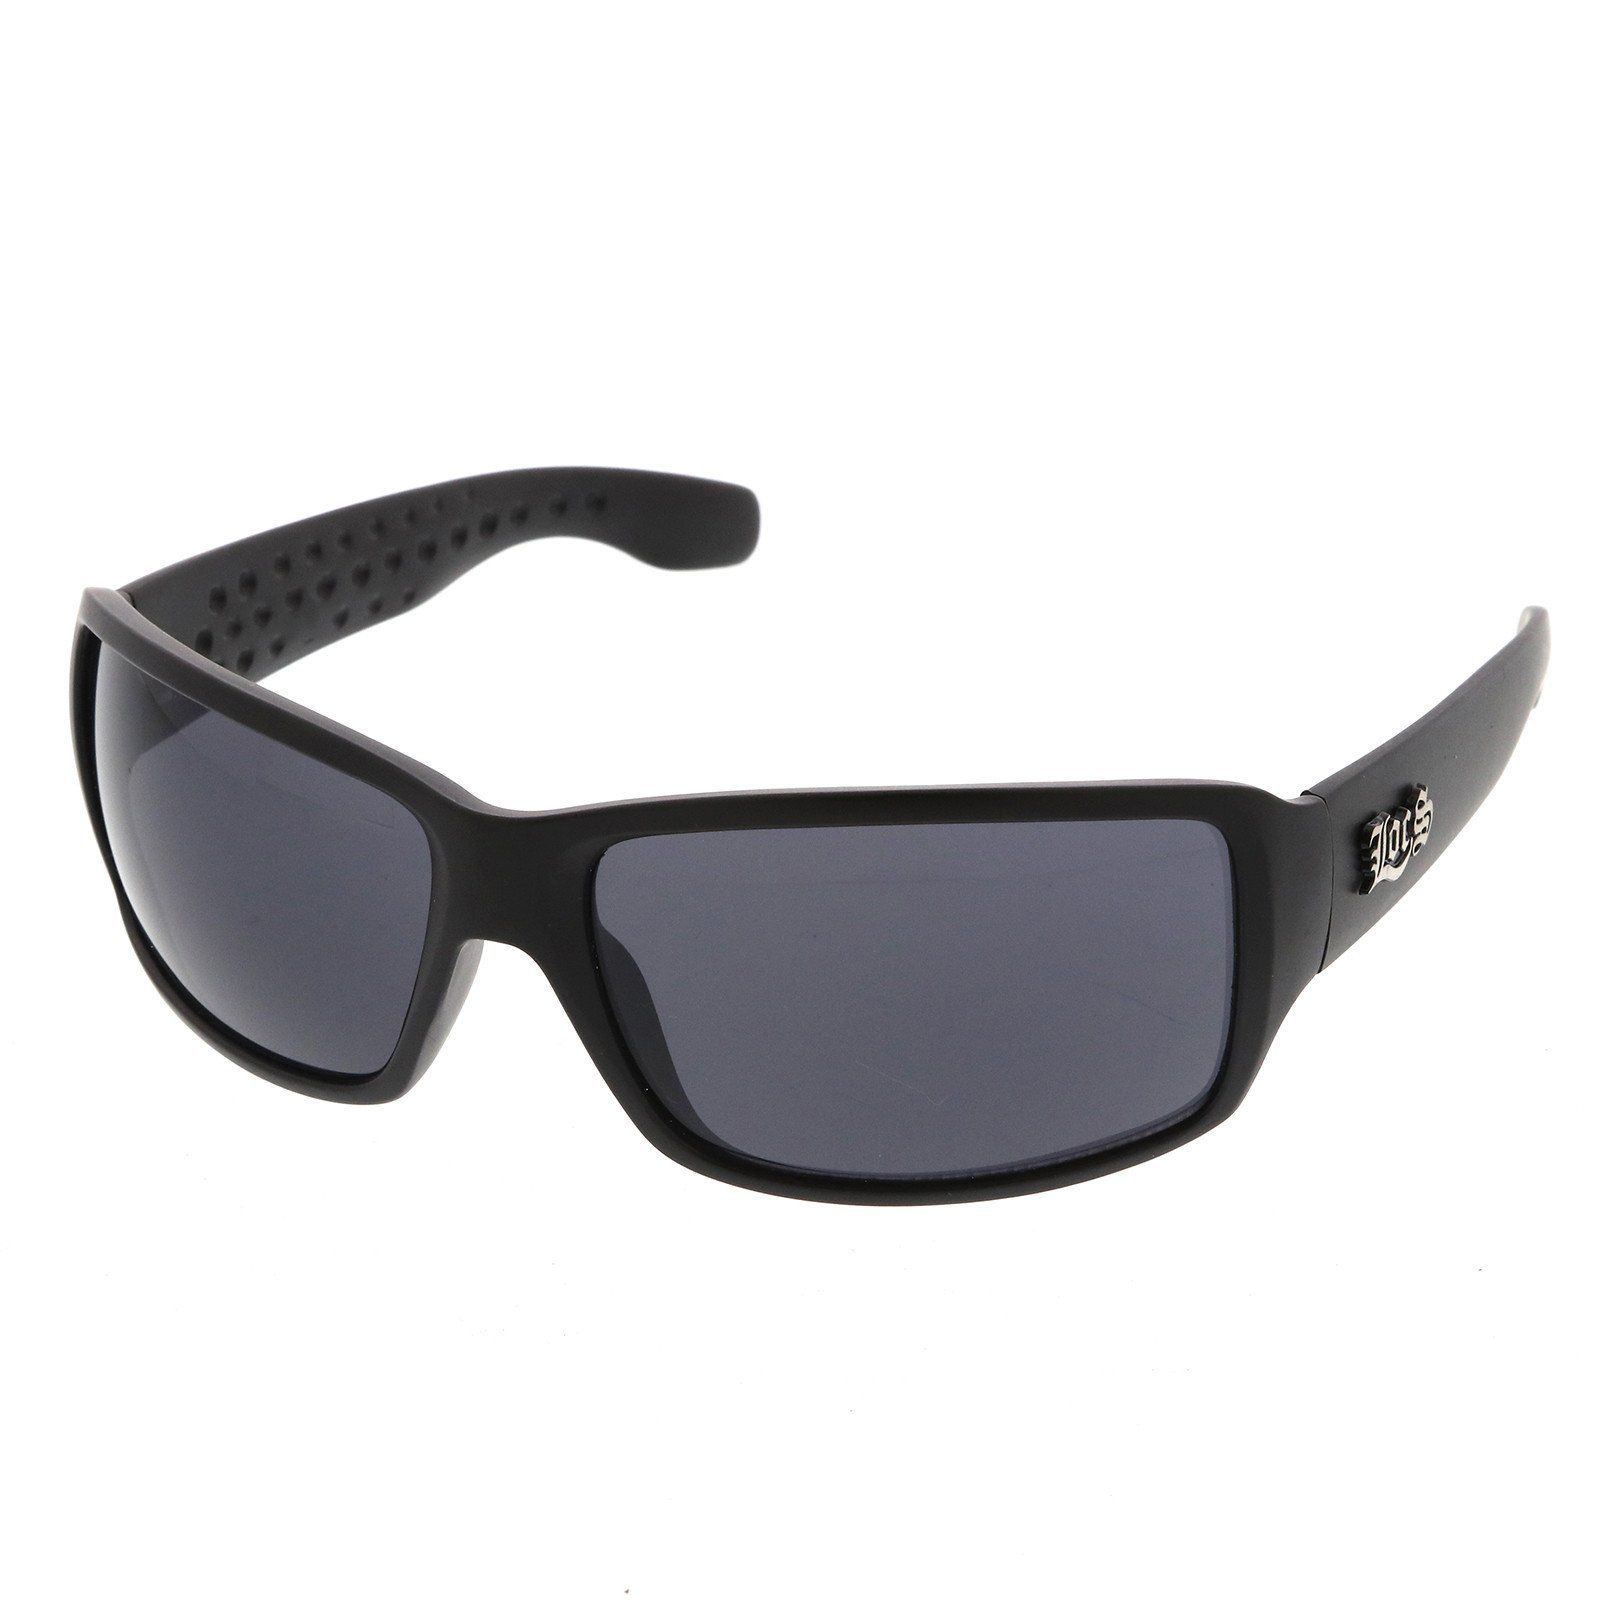 7c6bb742c7 Men s Hip Hop Rapper OG Wide Arm Blacked Out Lens Rectangle LOCS Sunglasses  66mm